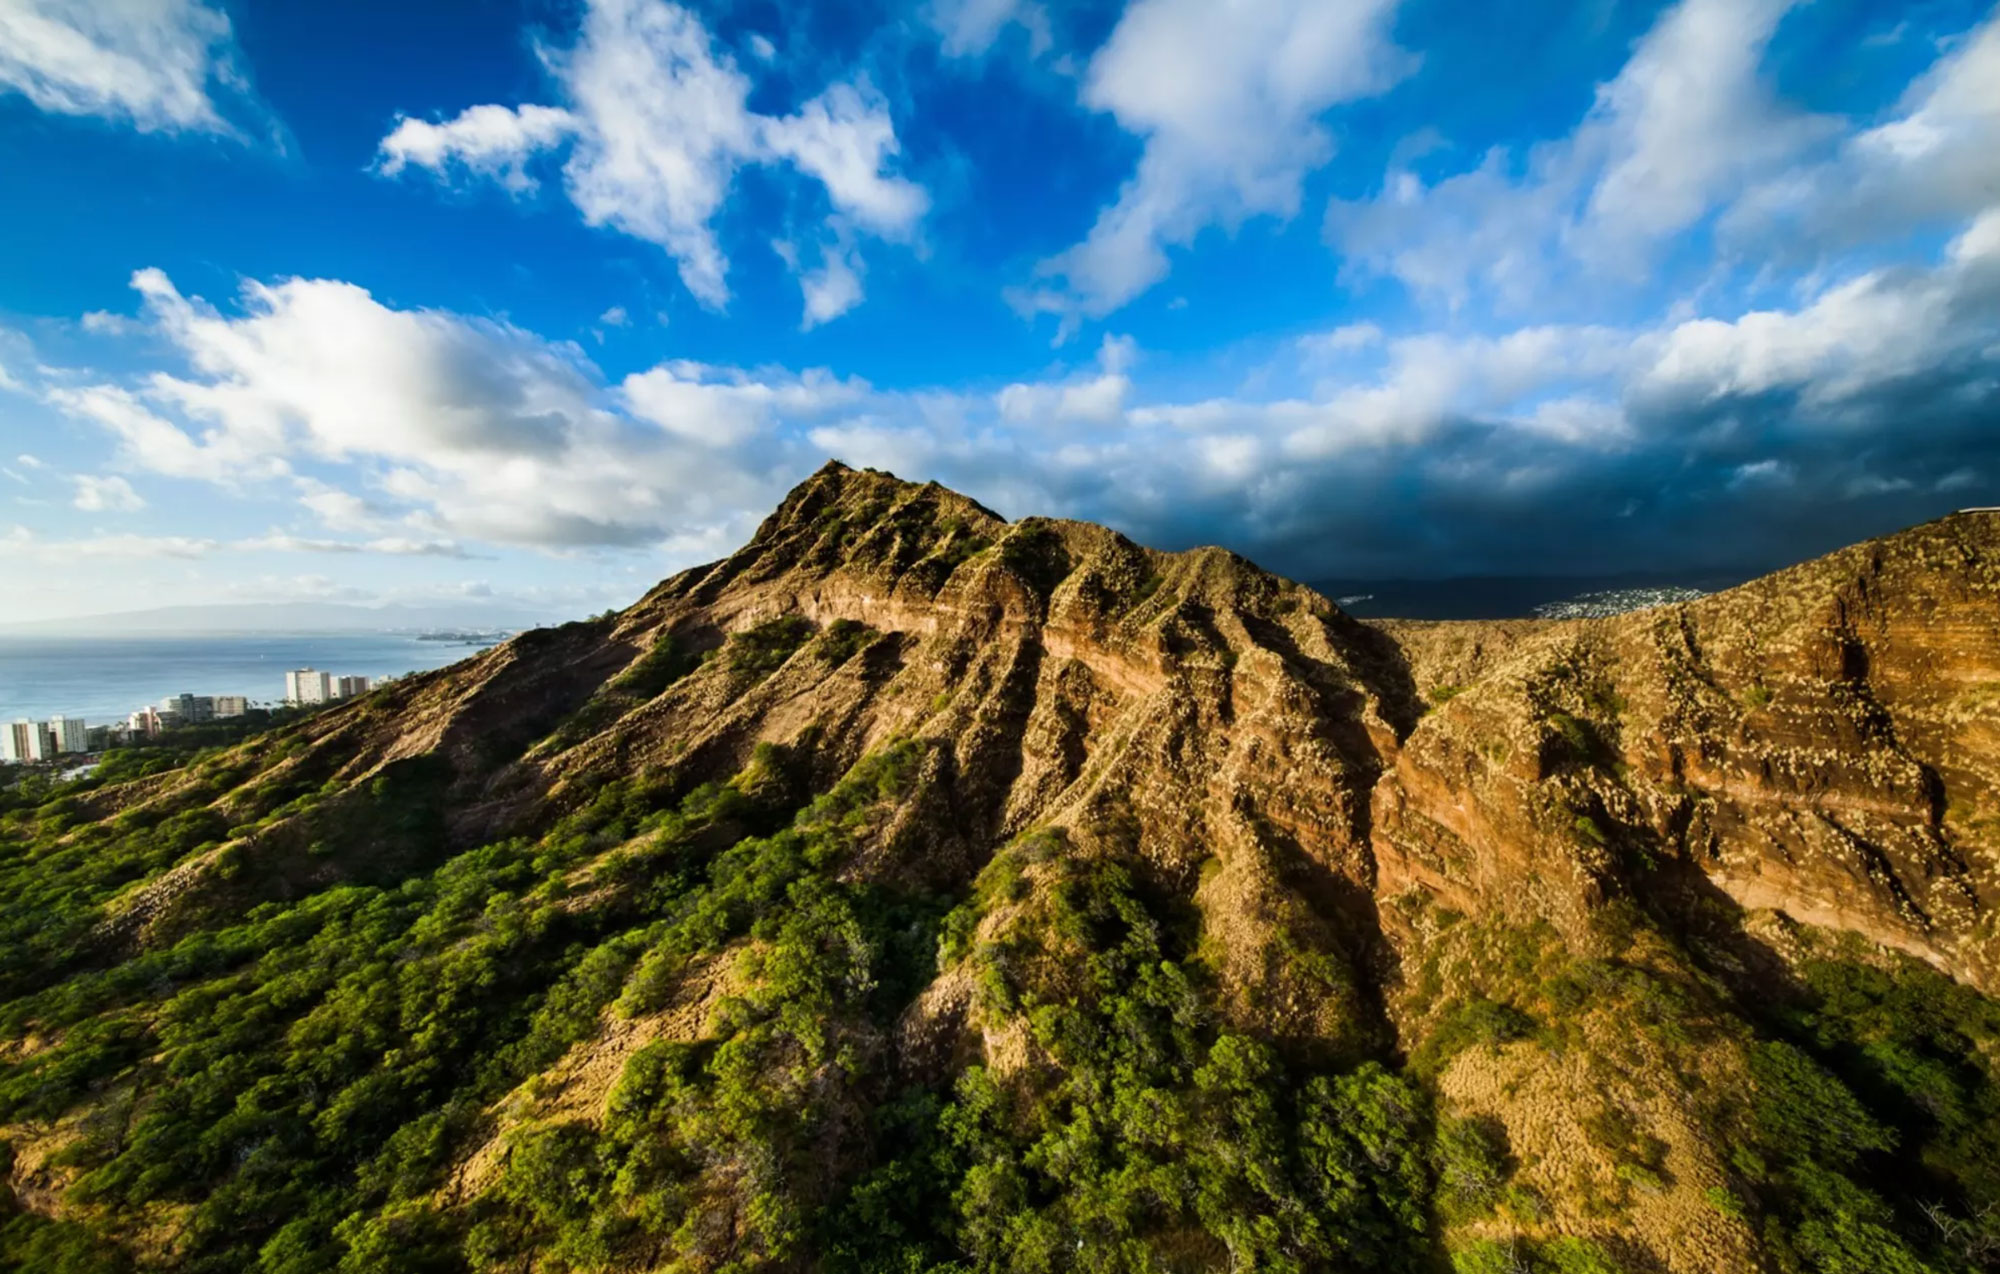 Manoa & Nuuanu - Alongside the iconic rainbows, lay the untouched bamboo and ginger forests that flood the scenic valleys with their beauty.